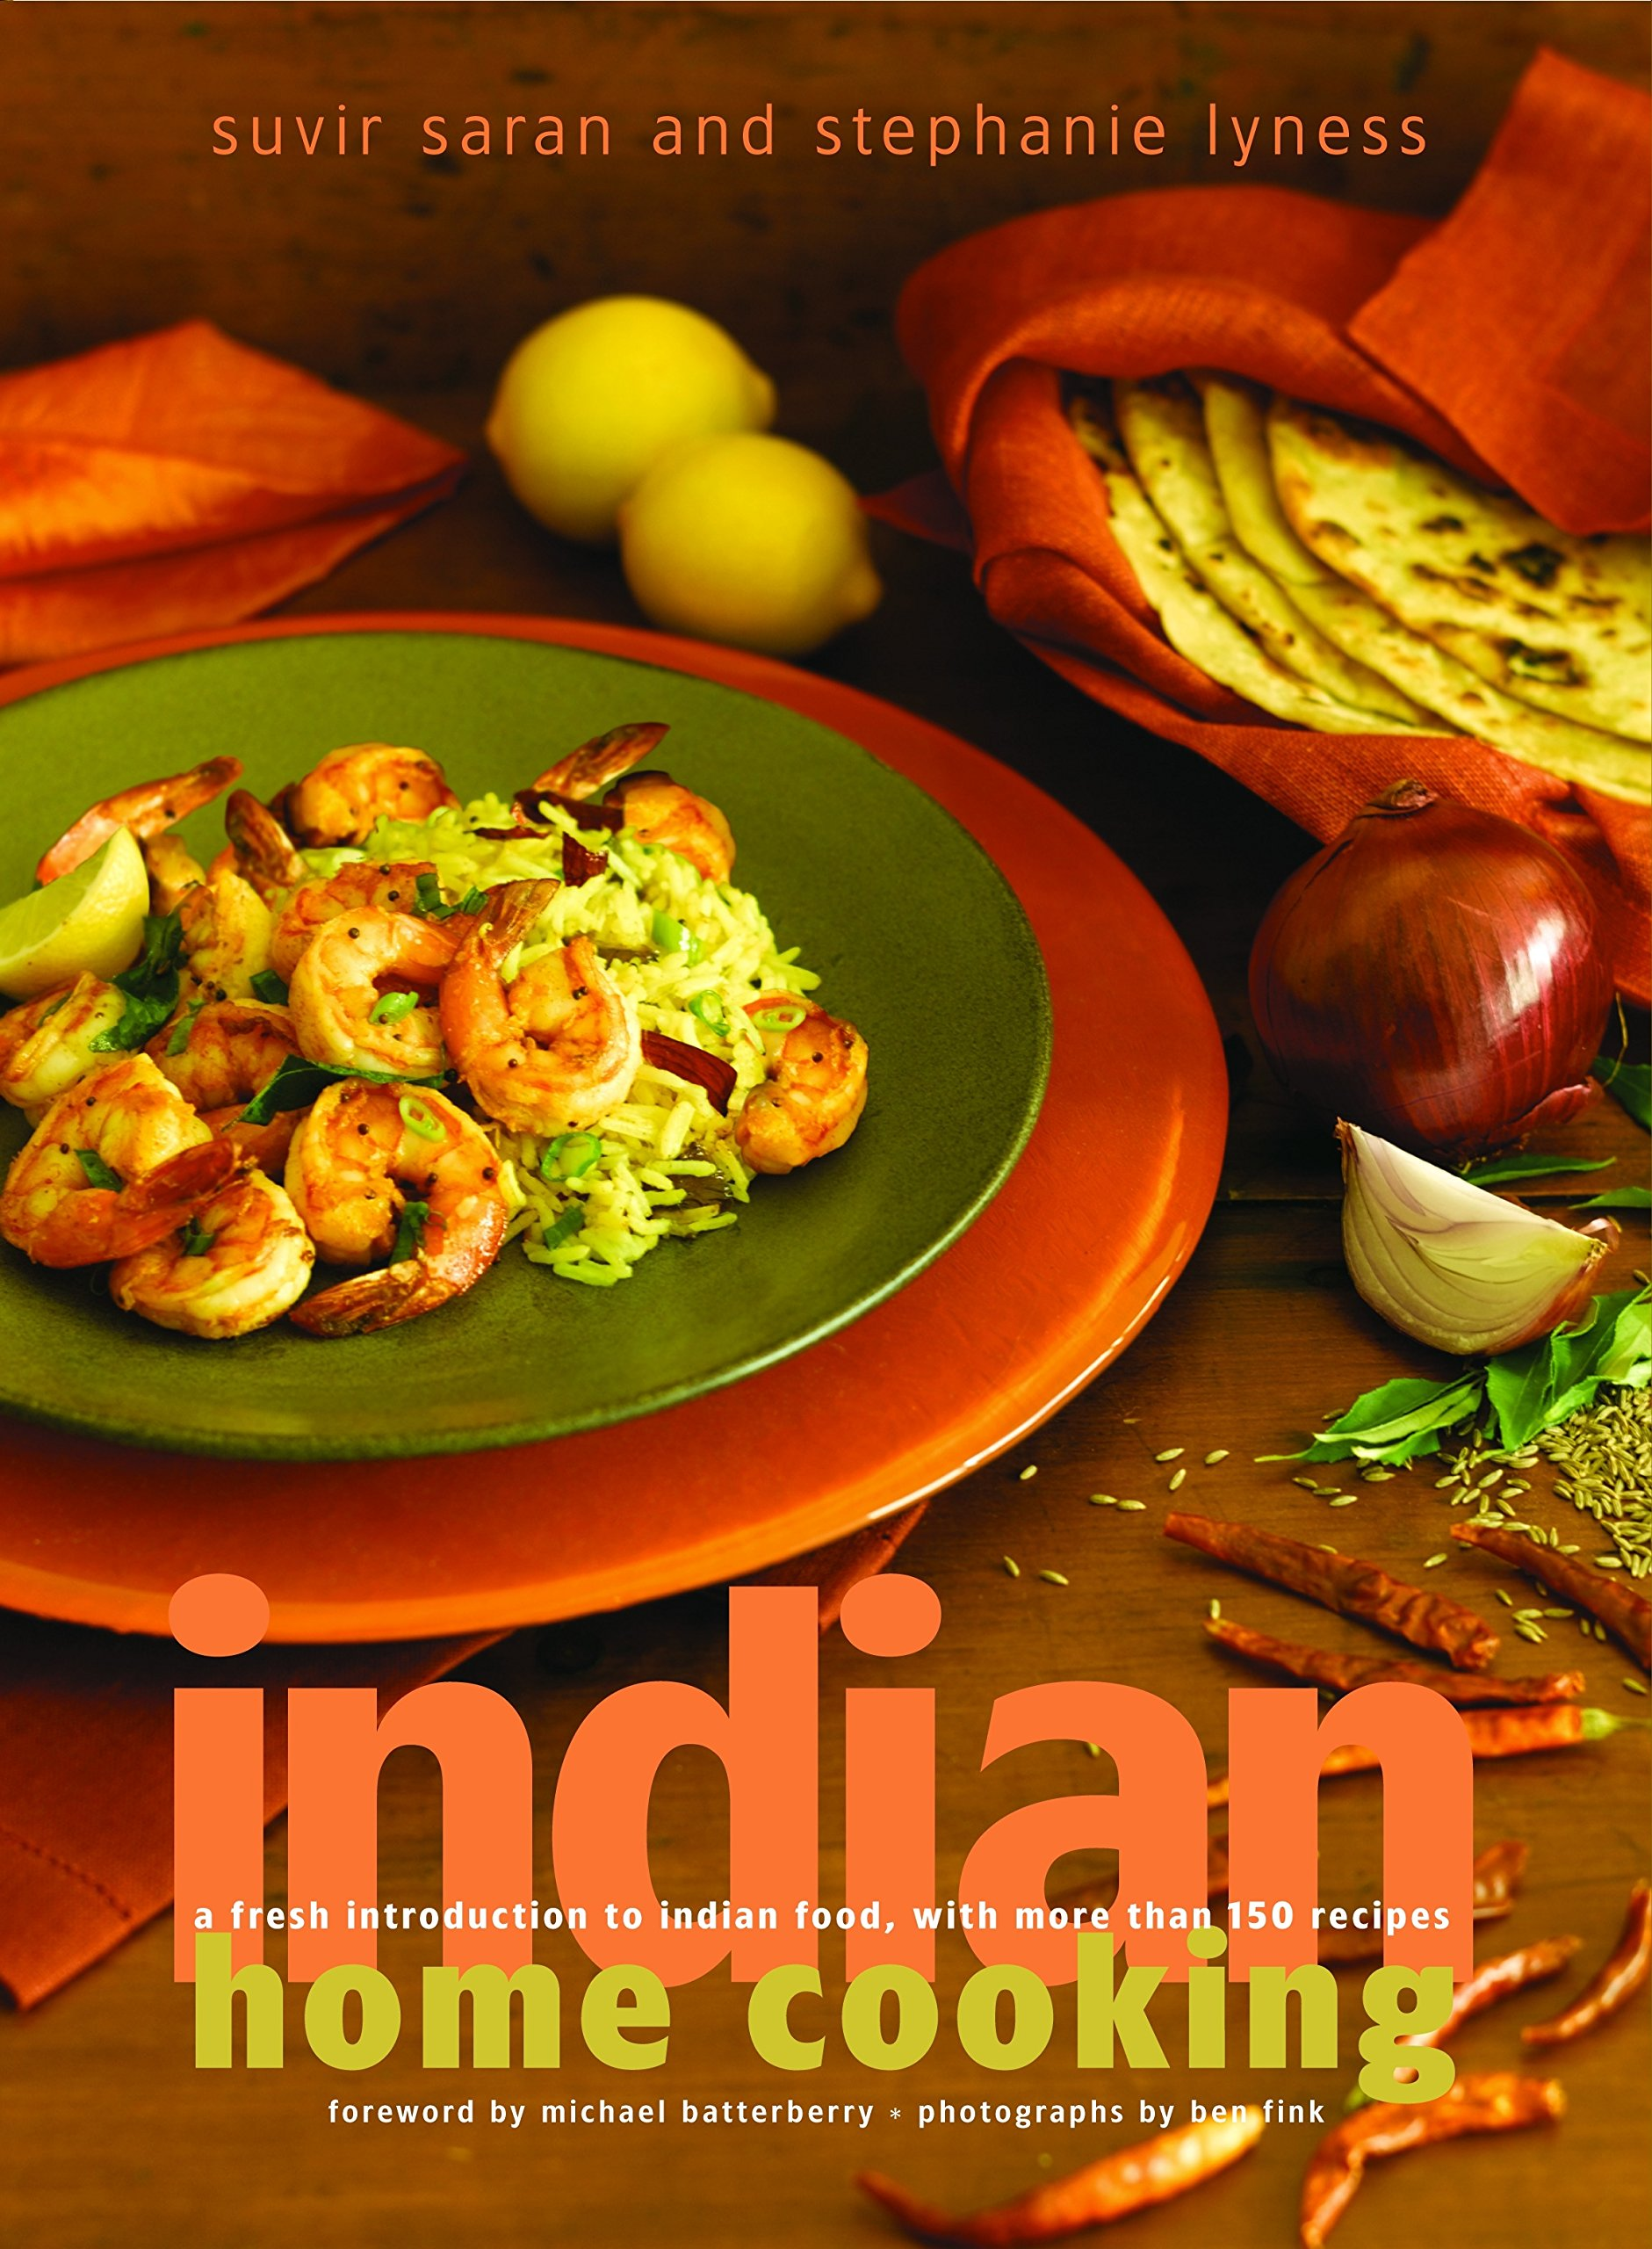 Image OfIndian Home Cooking: A Fresh Introduction To Indian Food, With More Than 150 Recipes: A Cookbook